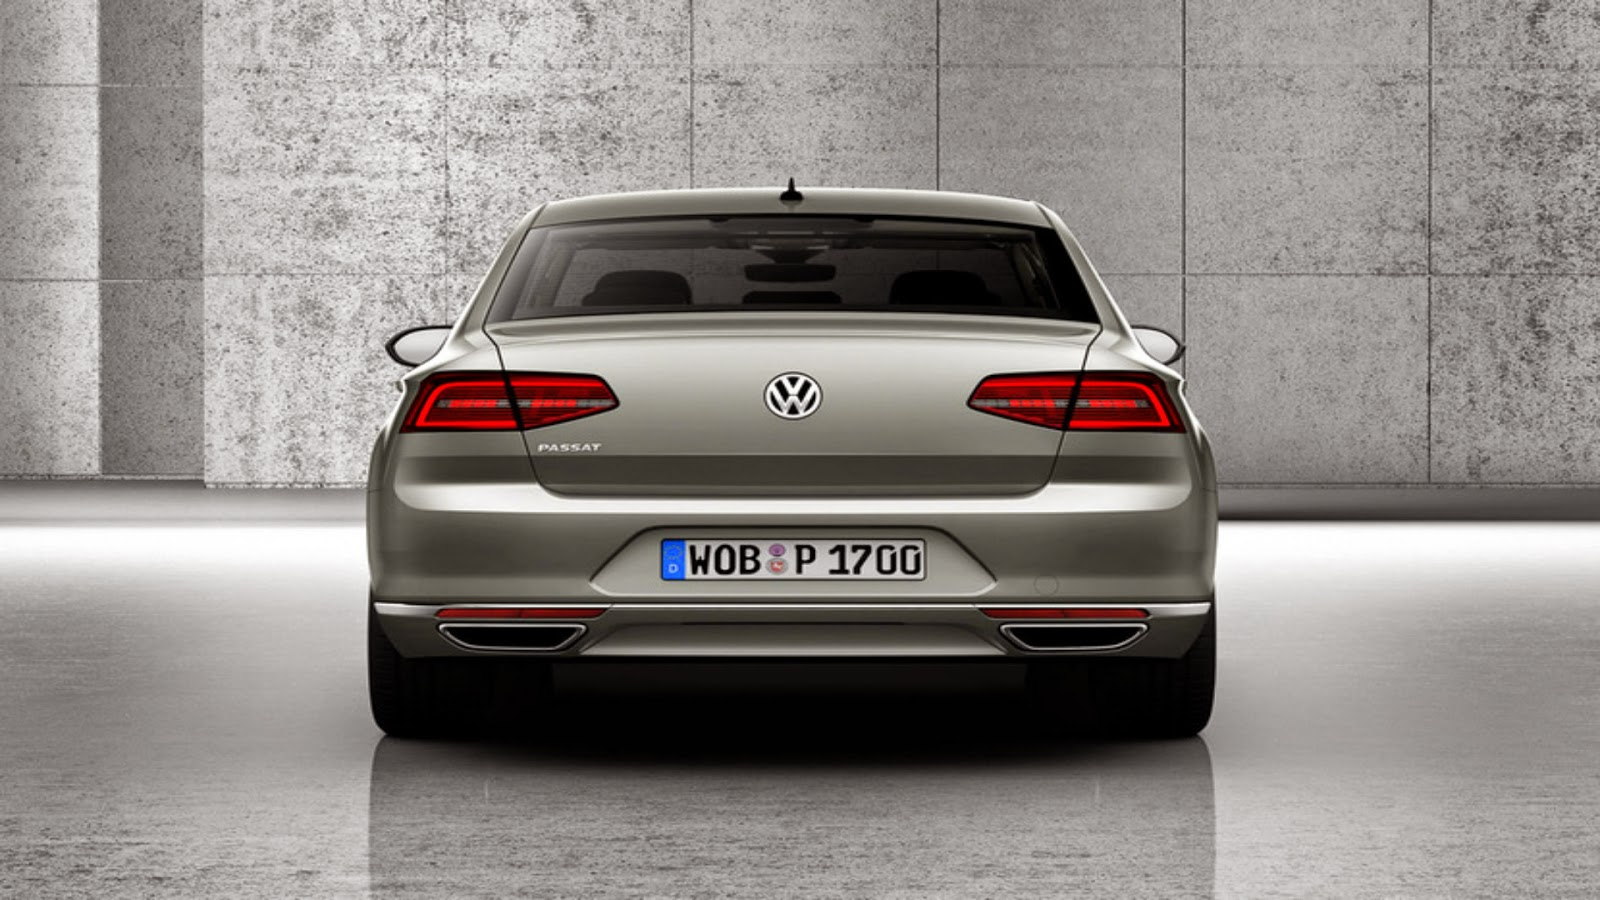 volkswagen passat 2014 photos latest auto design. Black Bedroom Furniture Sets. Home Design Ideas